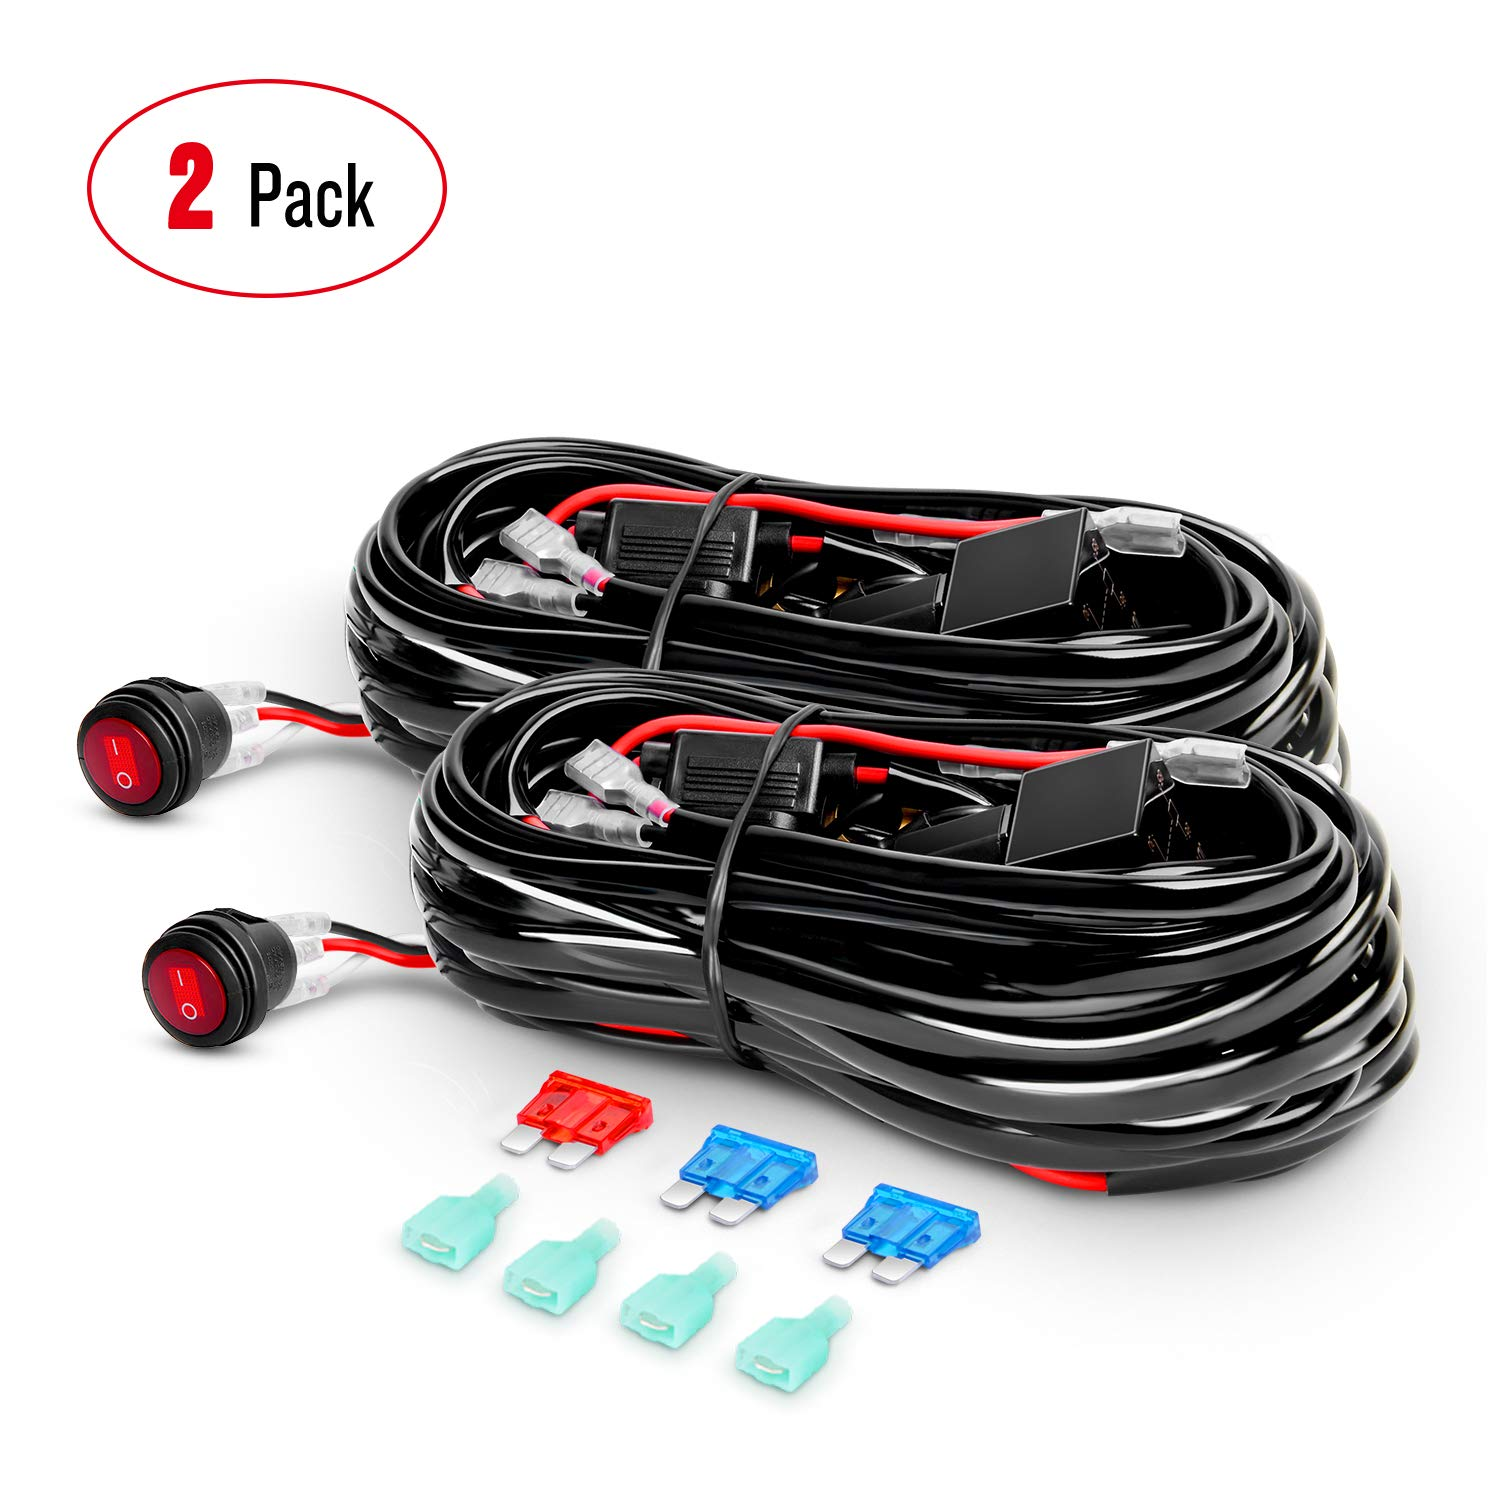 Nilight 2PCS LED Light Bar Wiring Harness Kit 12V On off Waterproof Switch Power Relay Blade Fuse,2 years Warranty